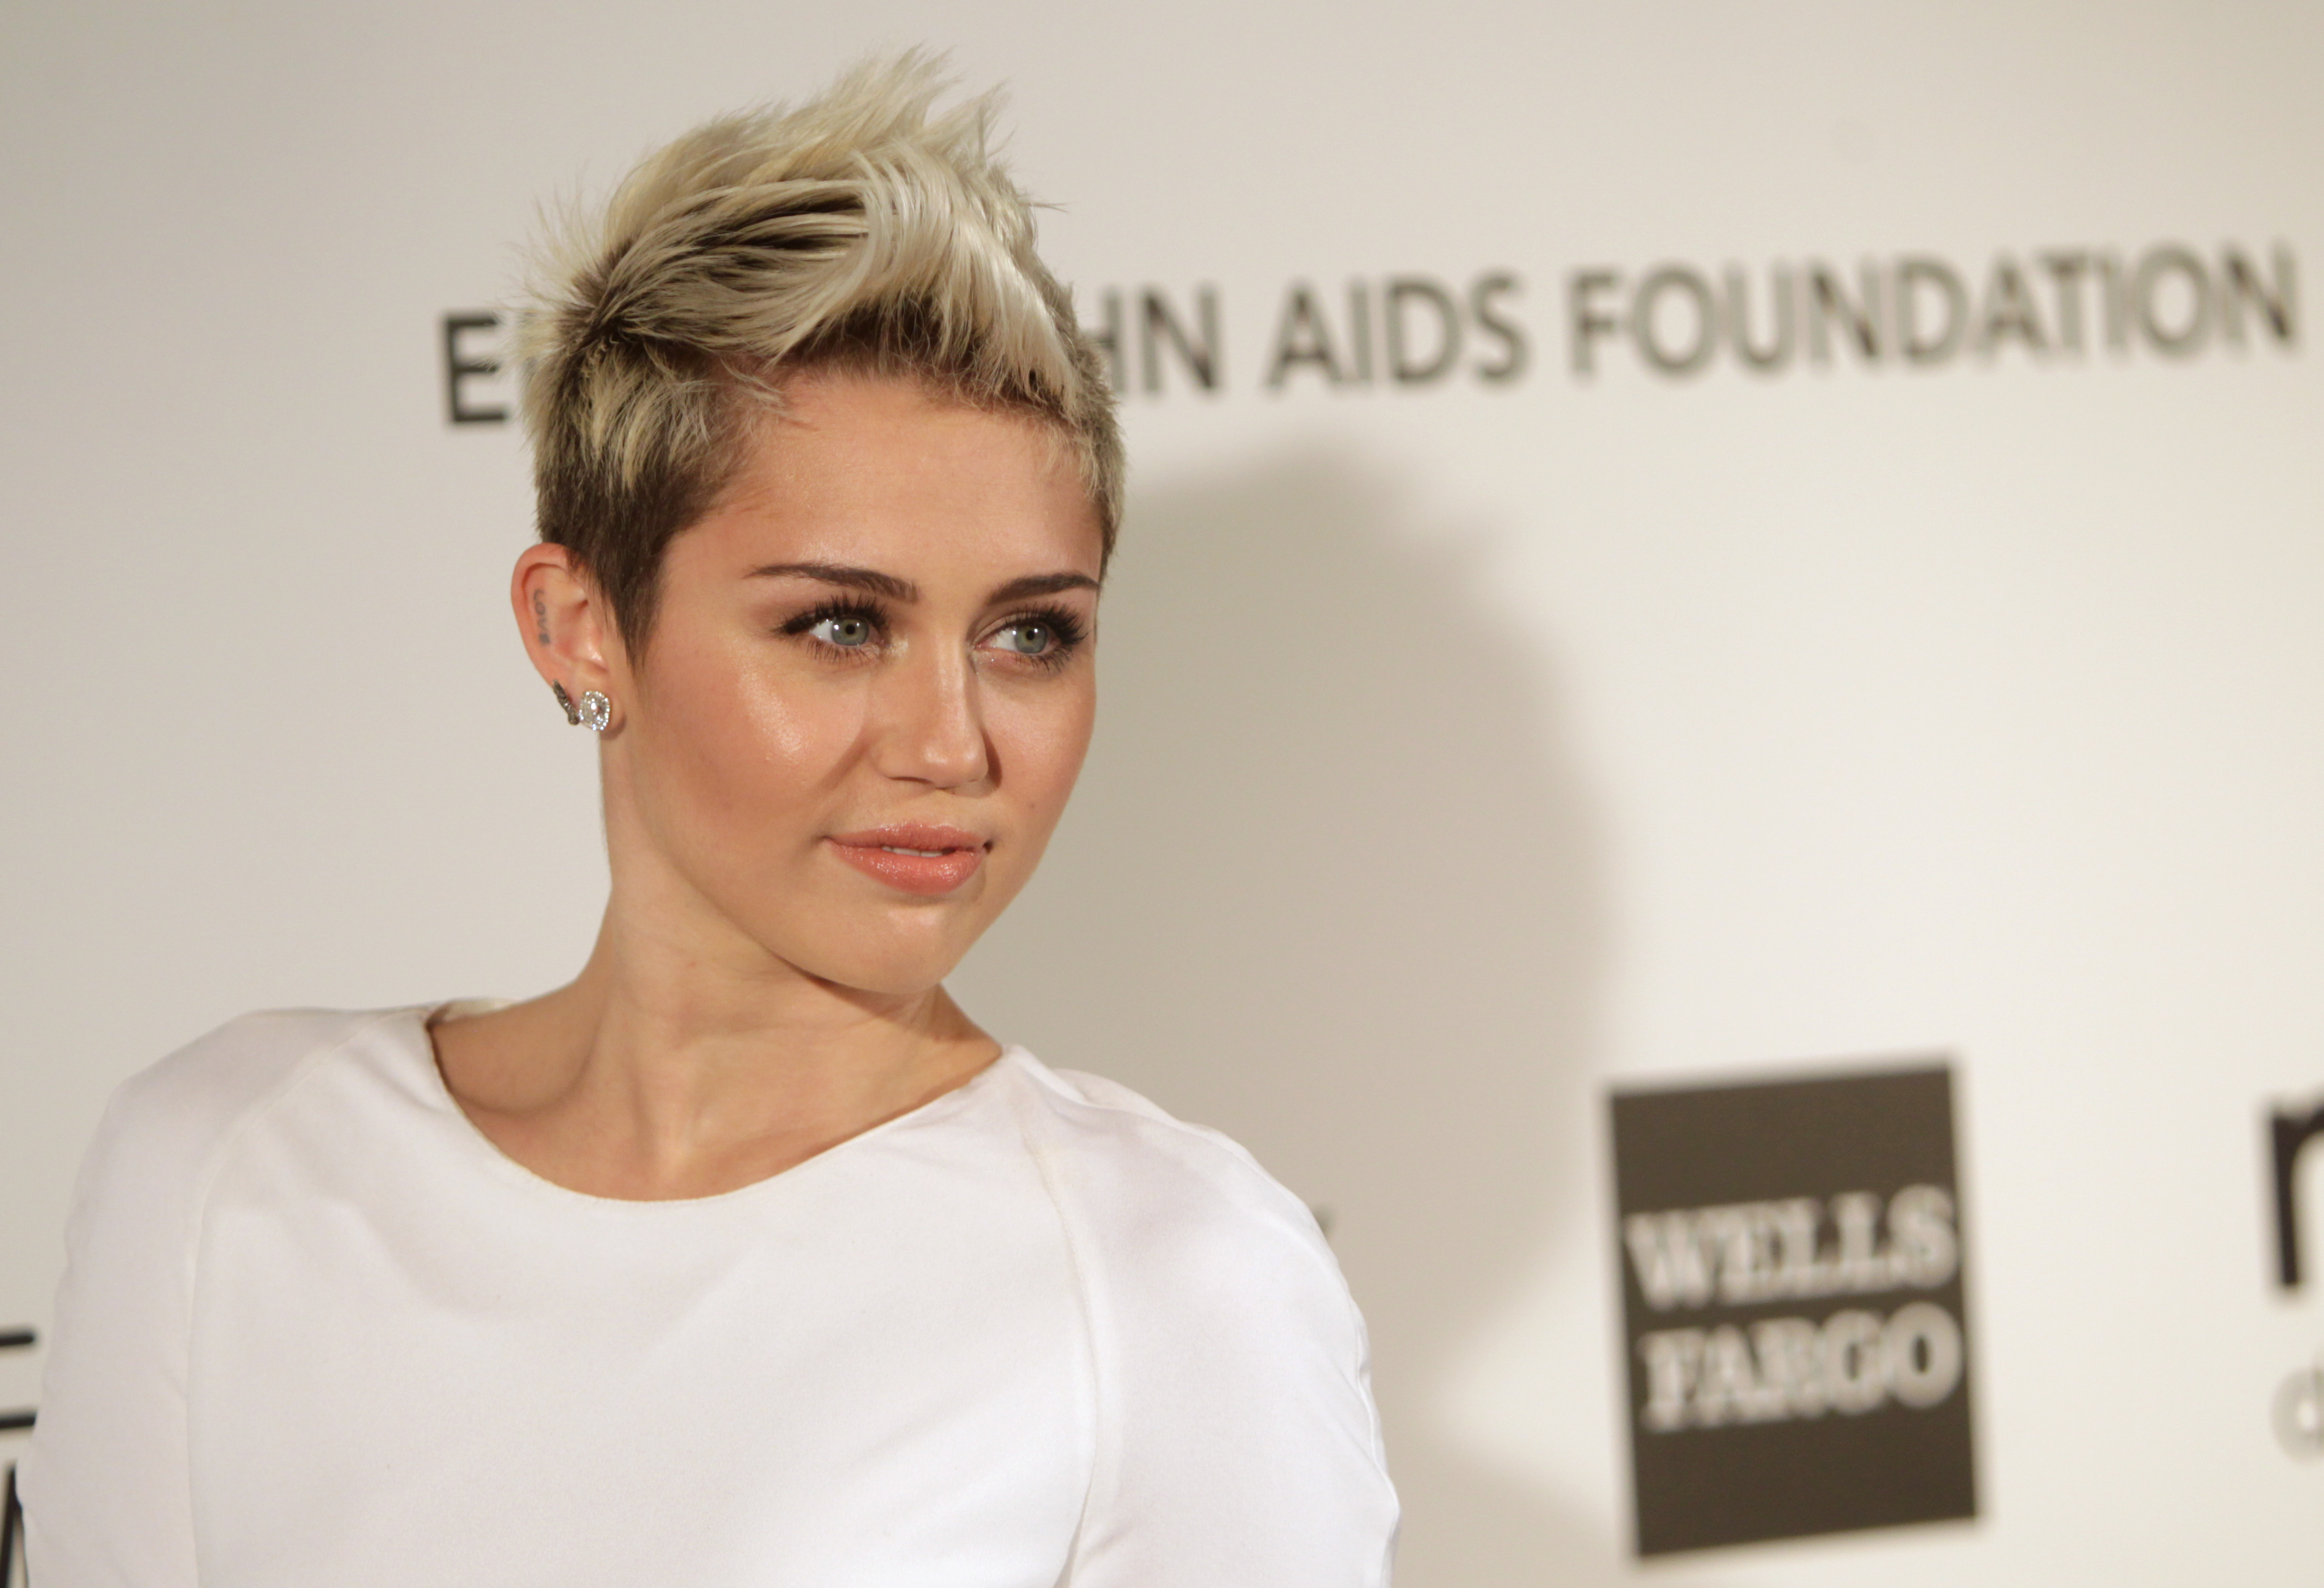 Miley Cyrus Naked and Topless Pics: Singer Goes Nude for V